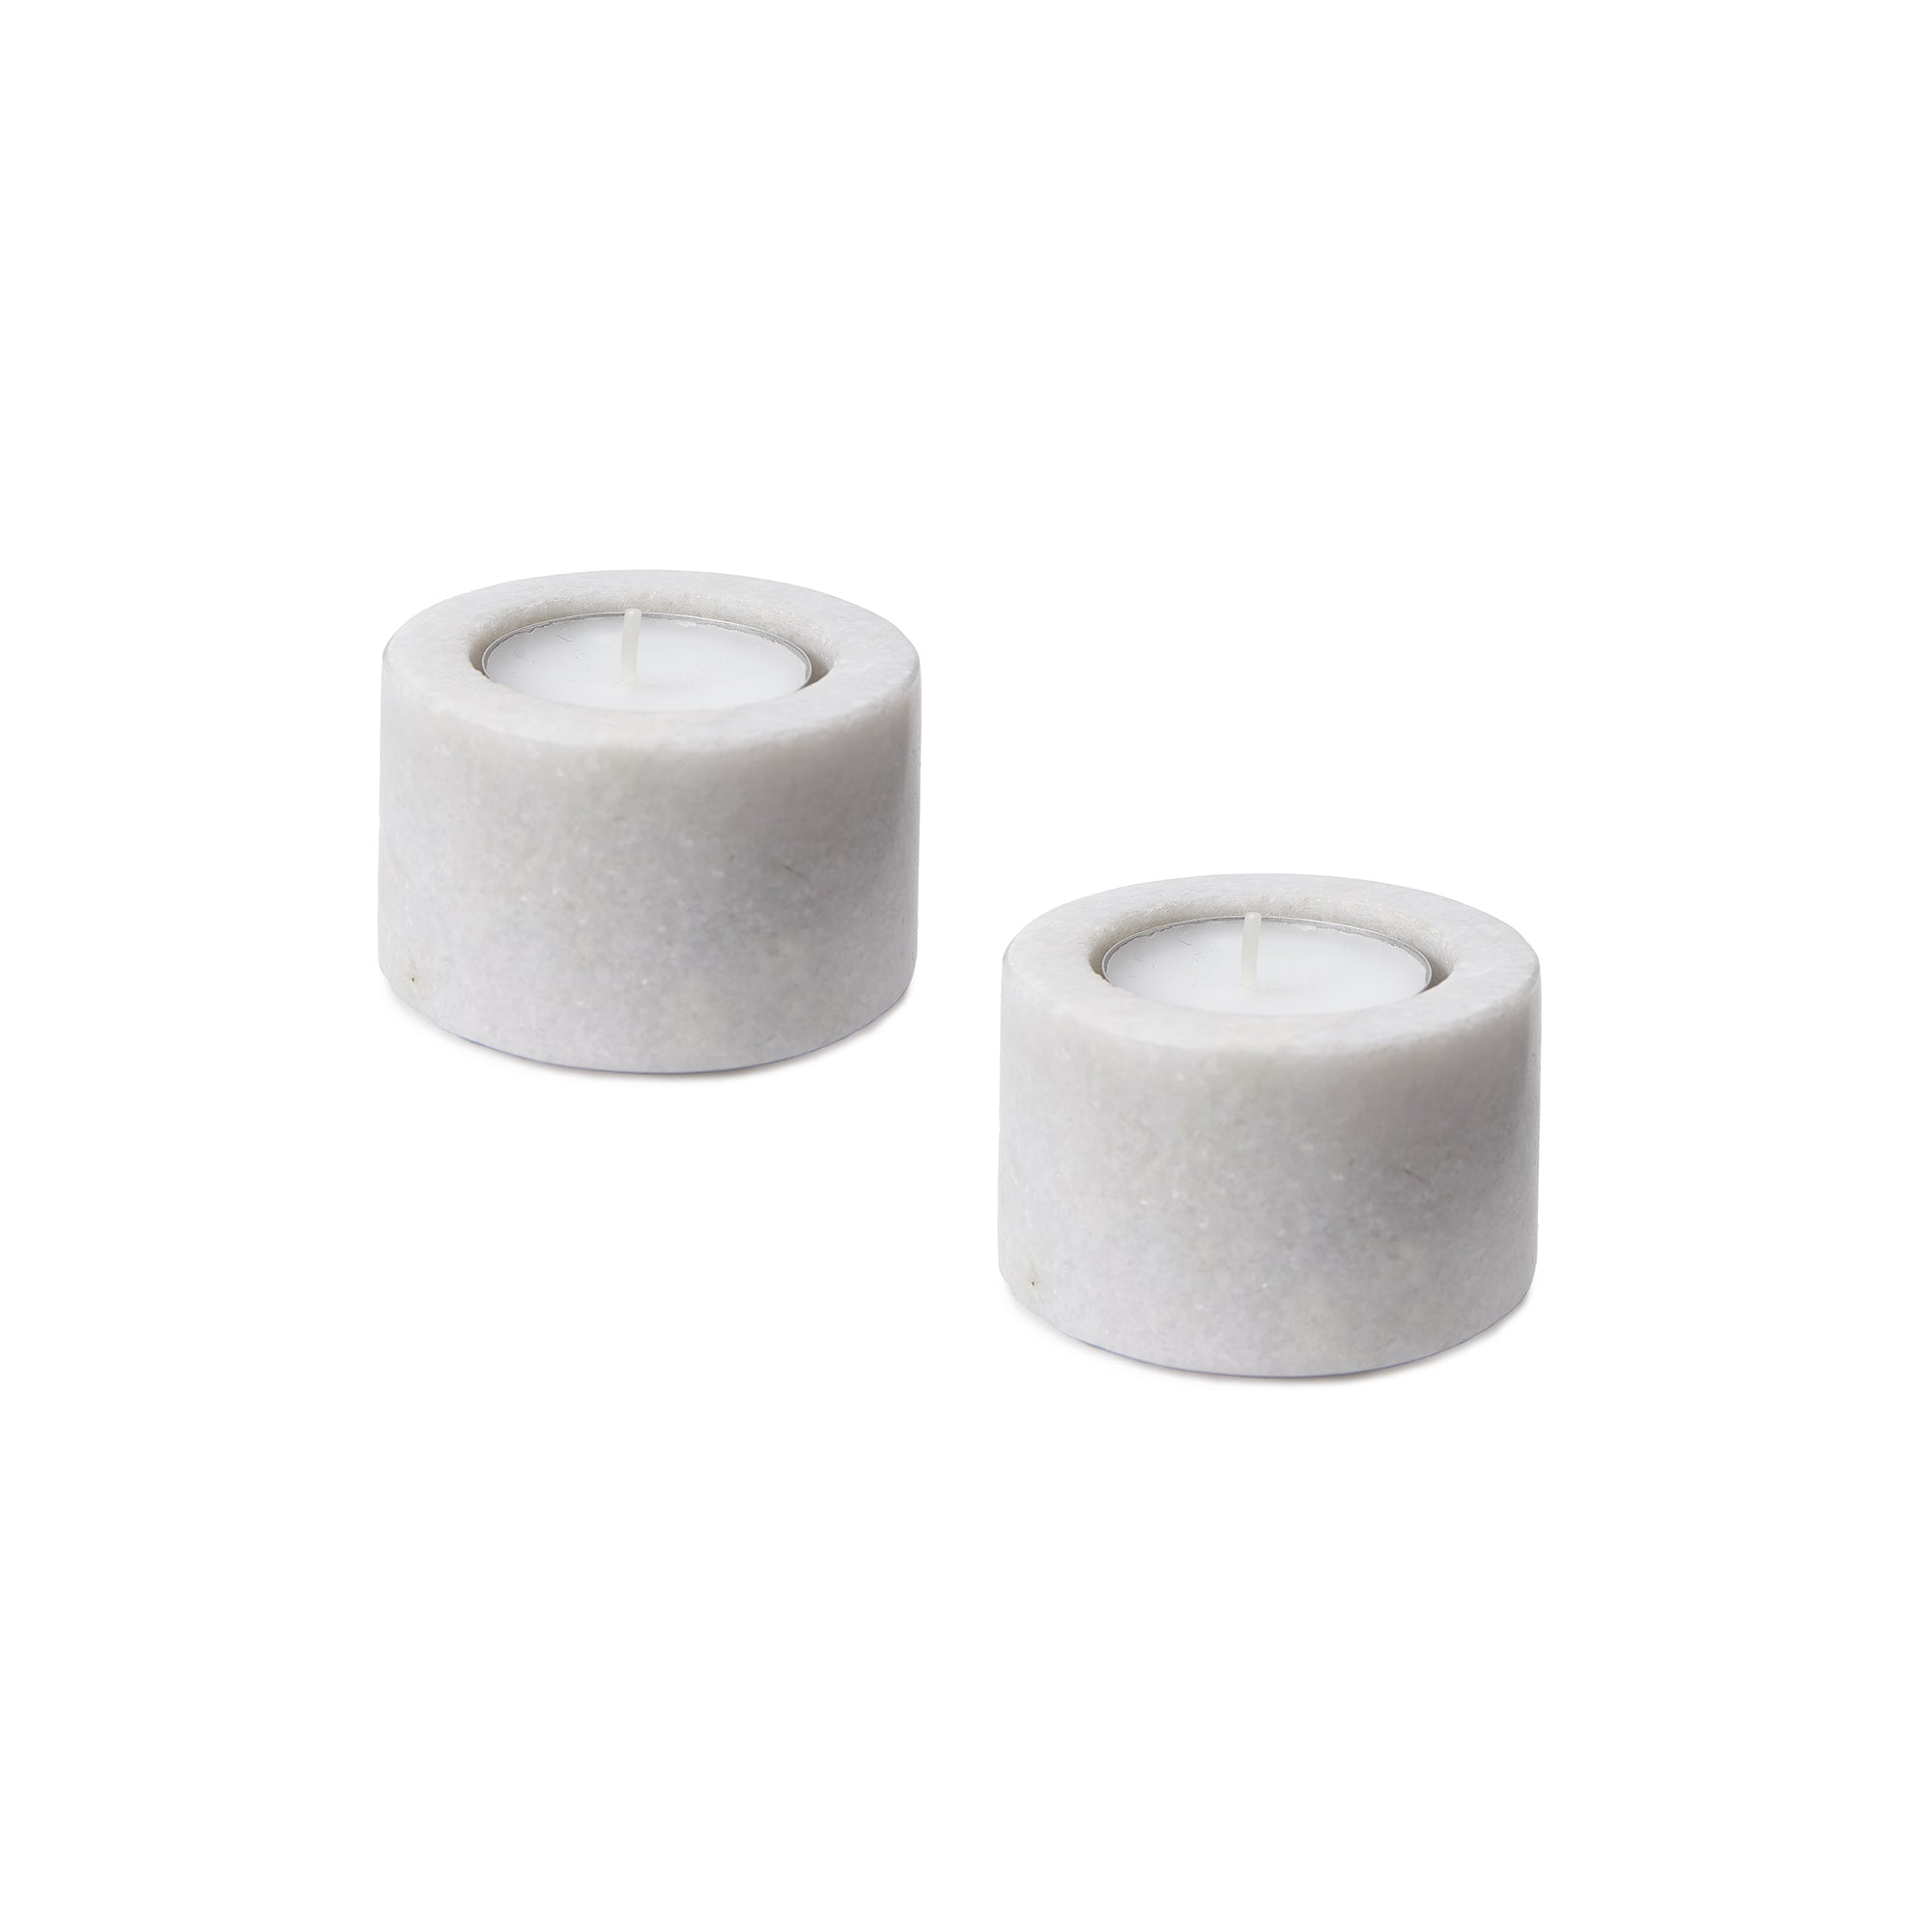 Nanda candle holder, white, 100% marble